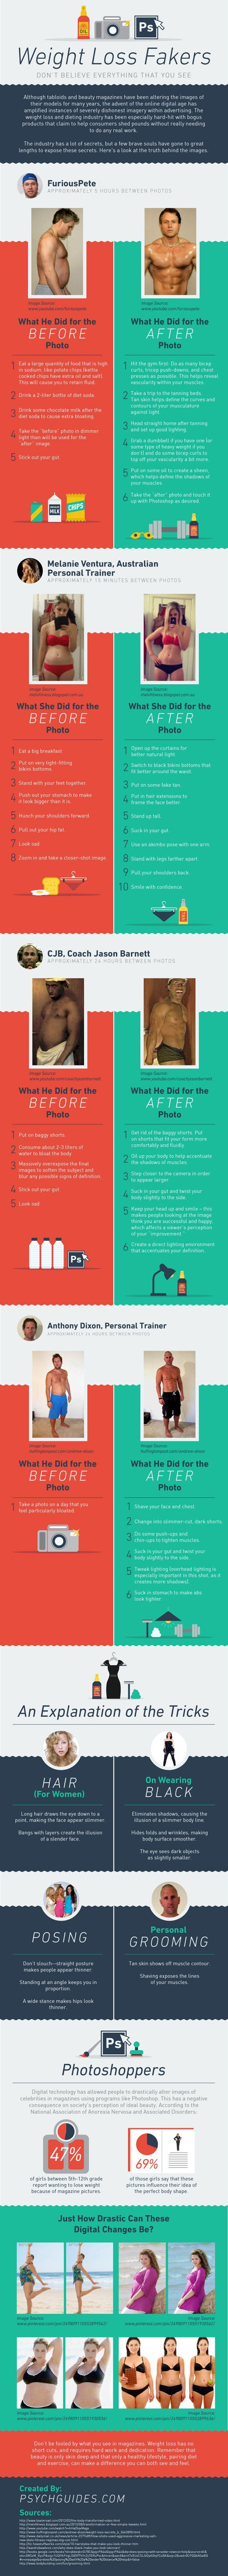 Excellent infographic about the weight lose scam! You will never see those comparative images the same way after you see this.